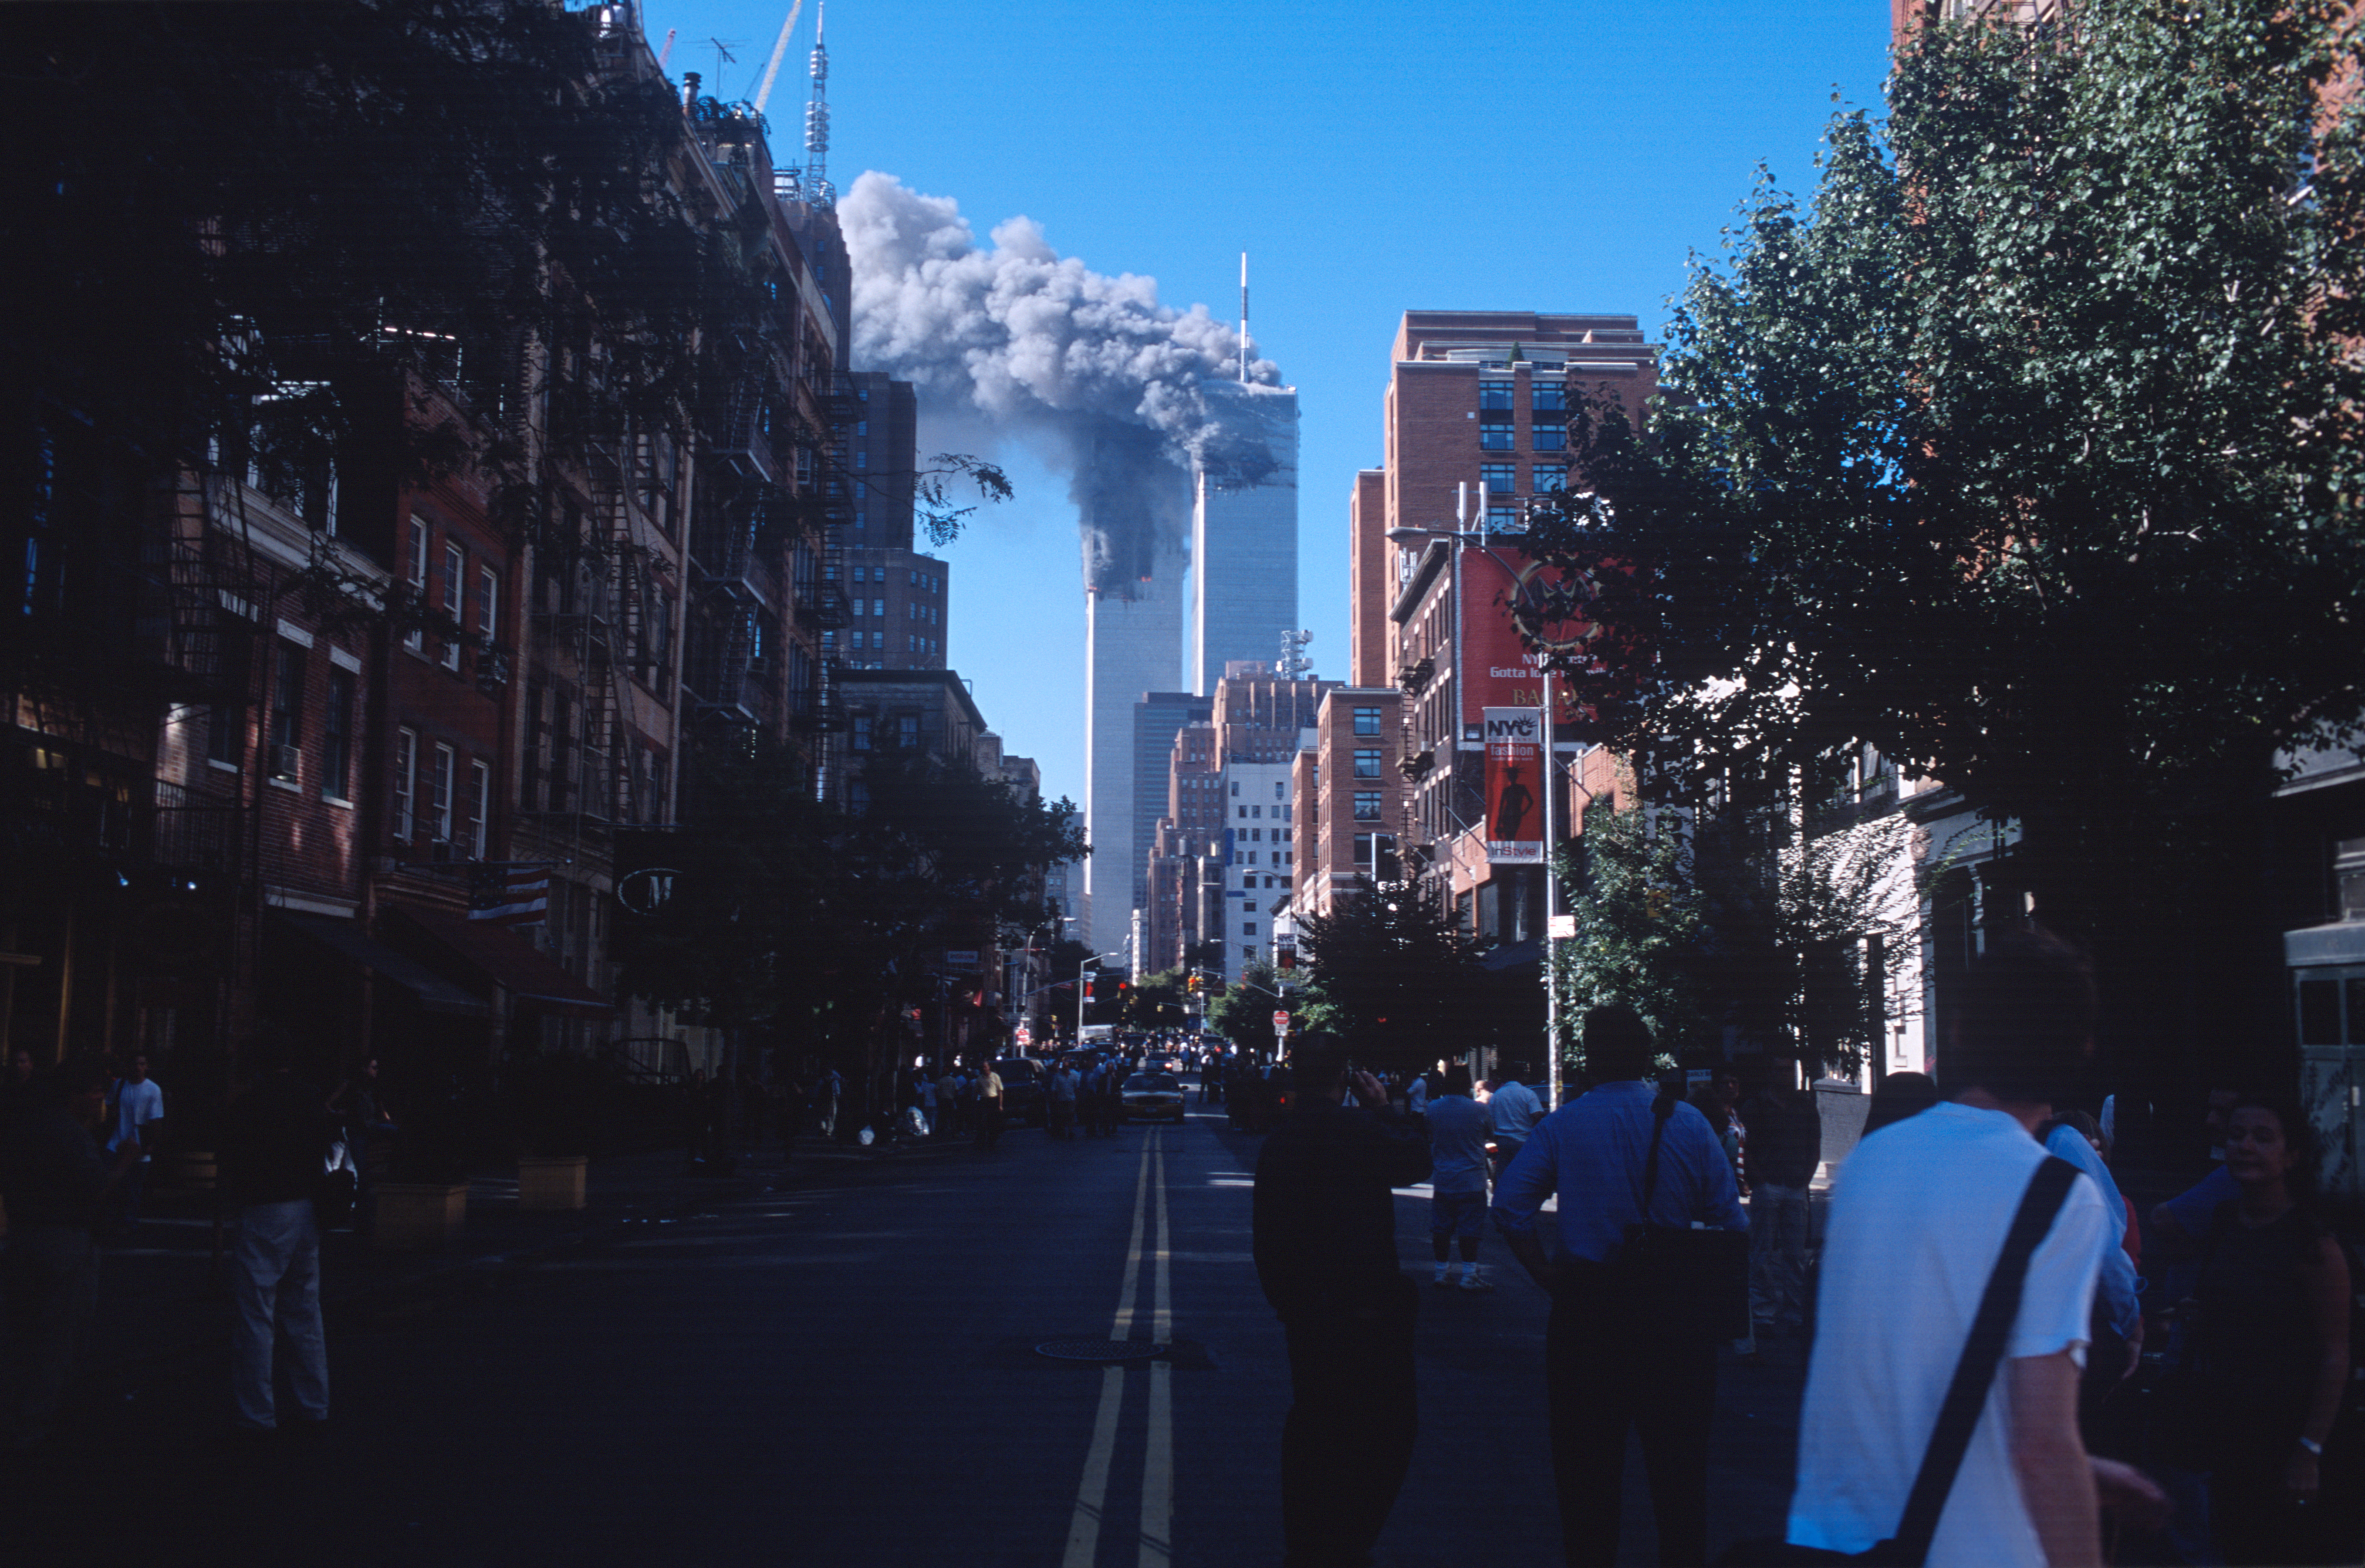 People look on as smoke from the burning World Trade Center towers fills up the downtown Manhattan skyline after both buildings were attacked by airplanes on September 11, 2001 in New York City.